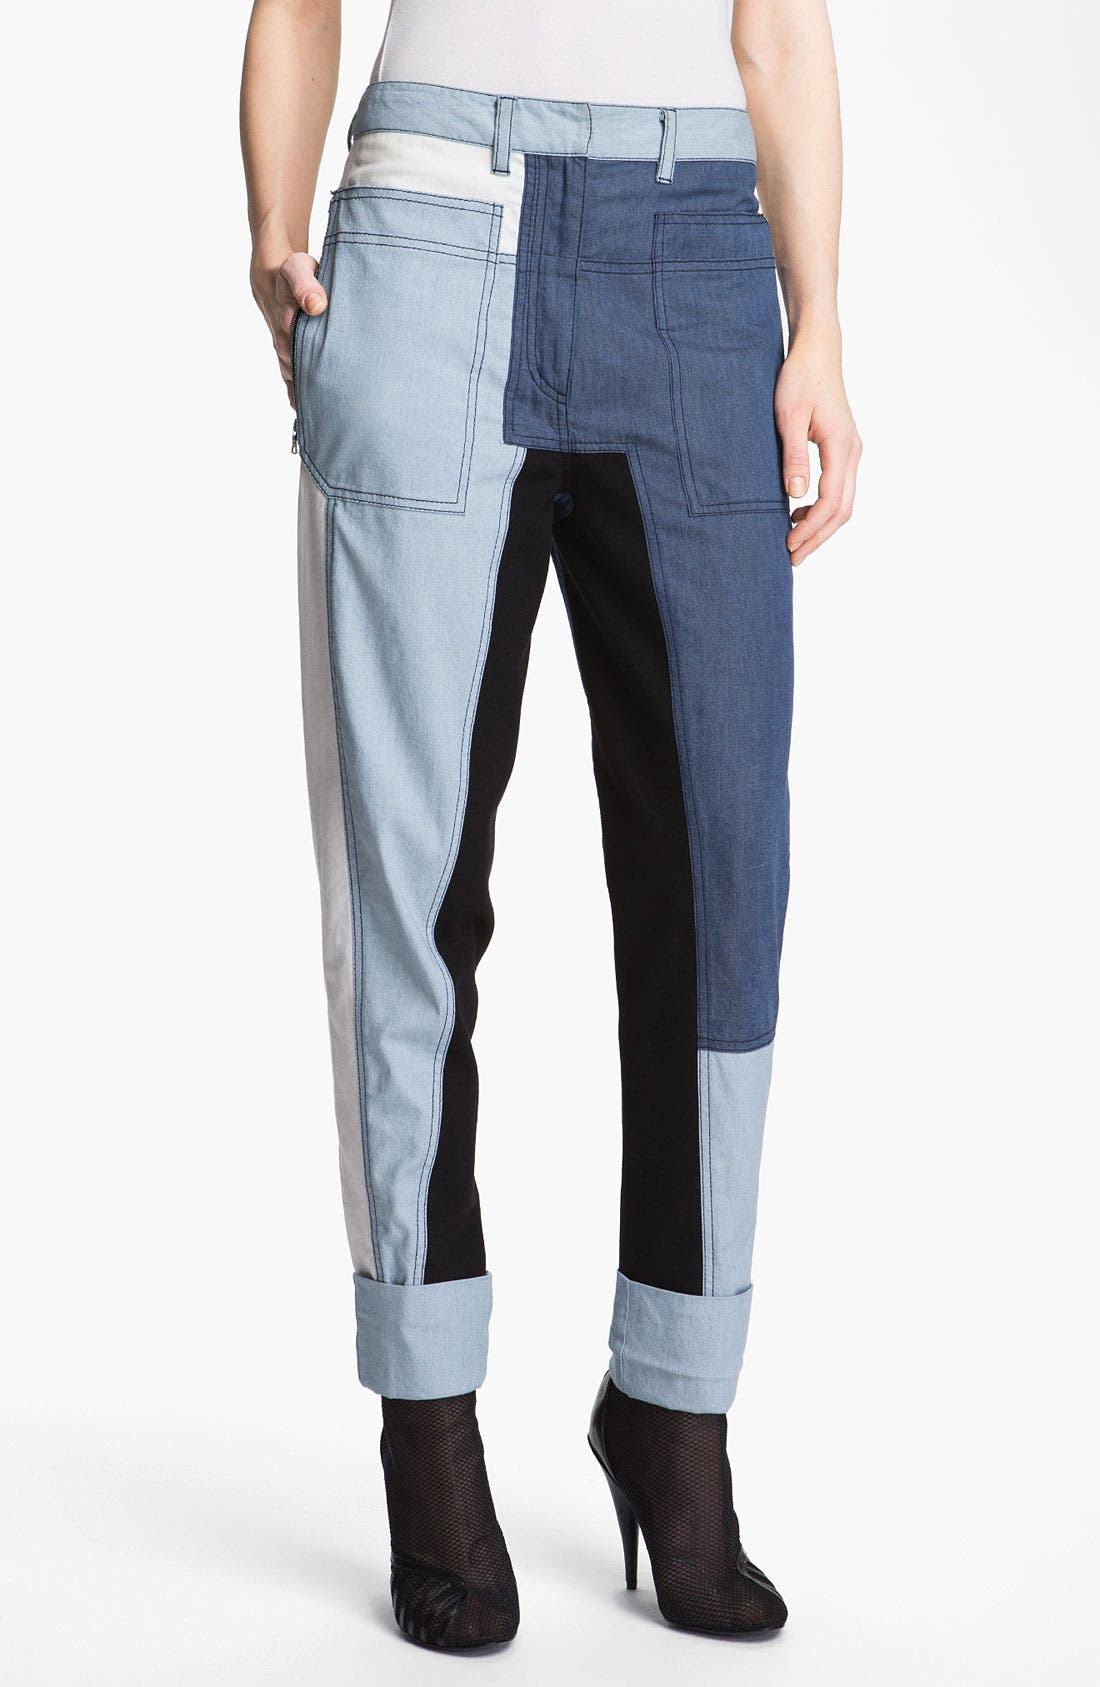 Main Image - 3.1 Phillip Lim 'Cut Up' Denim Pants